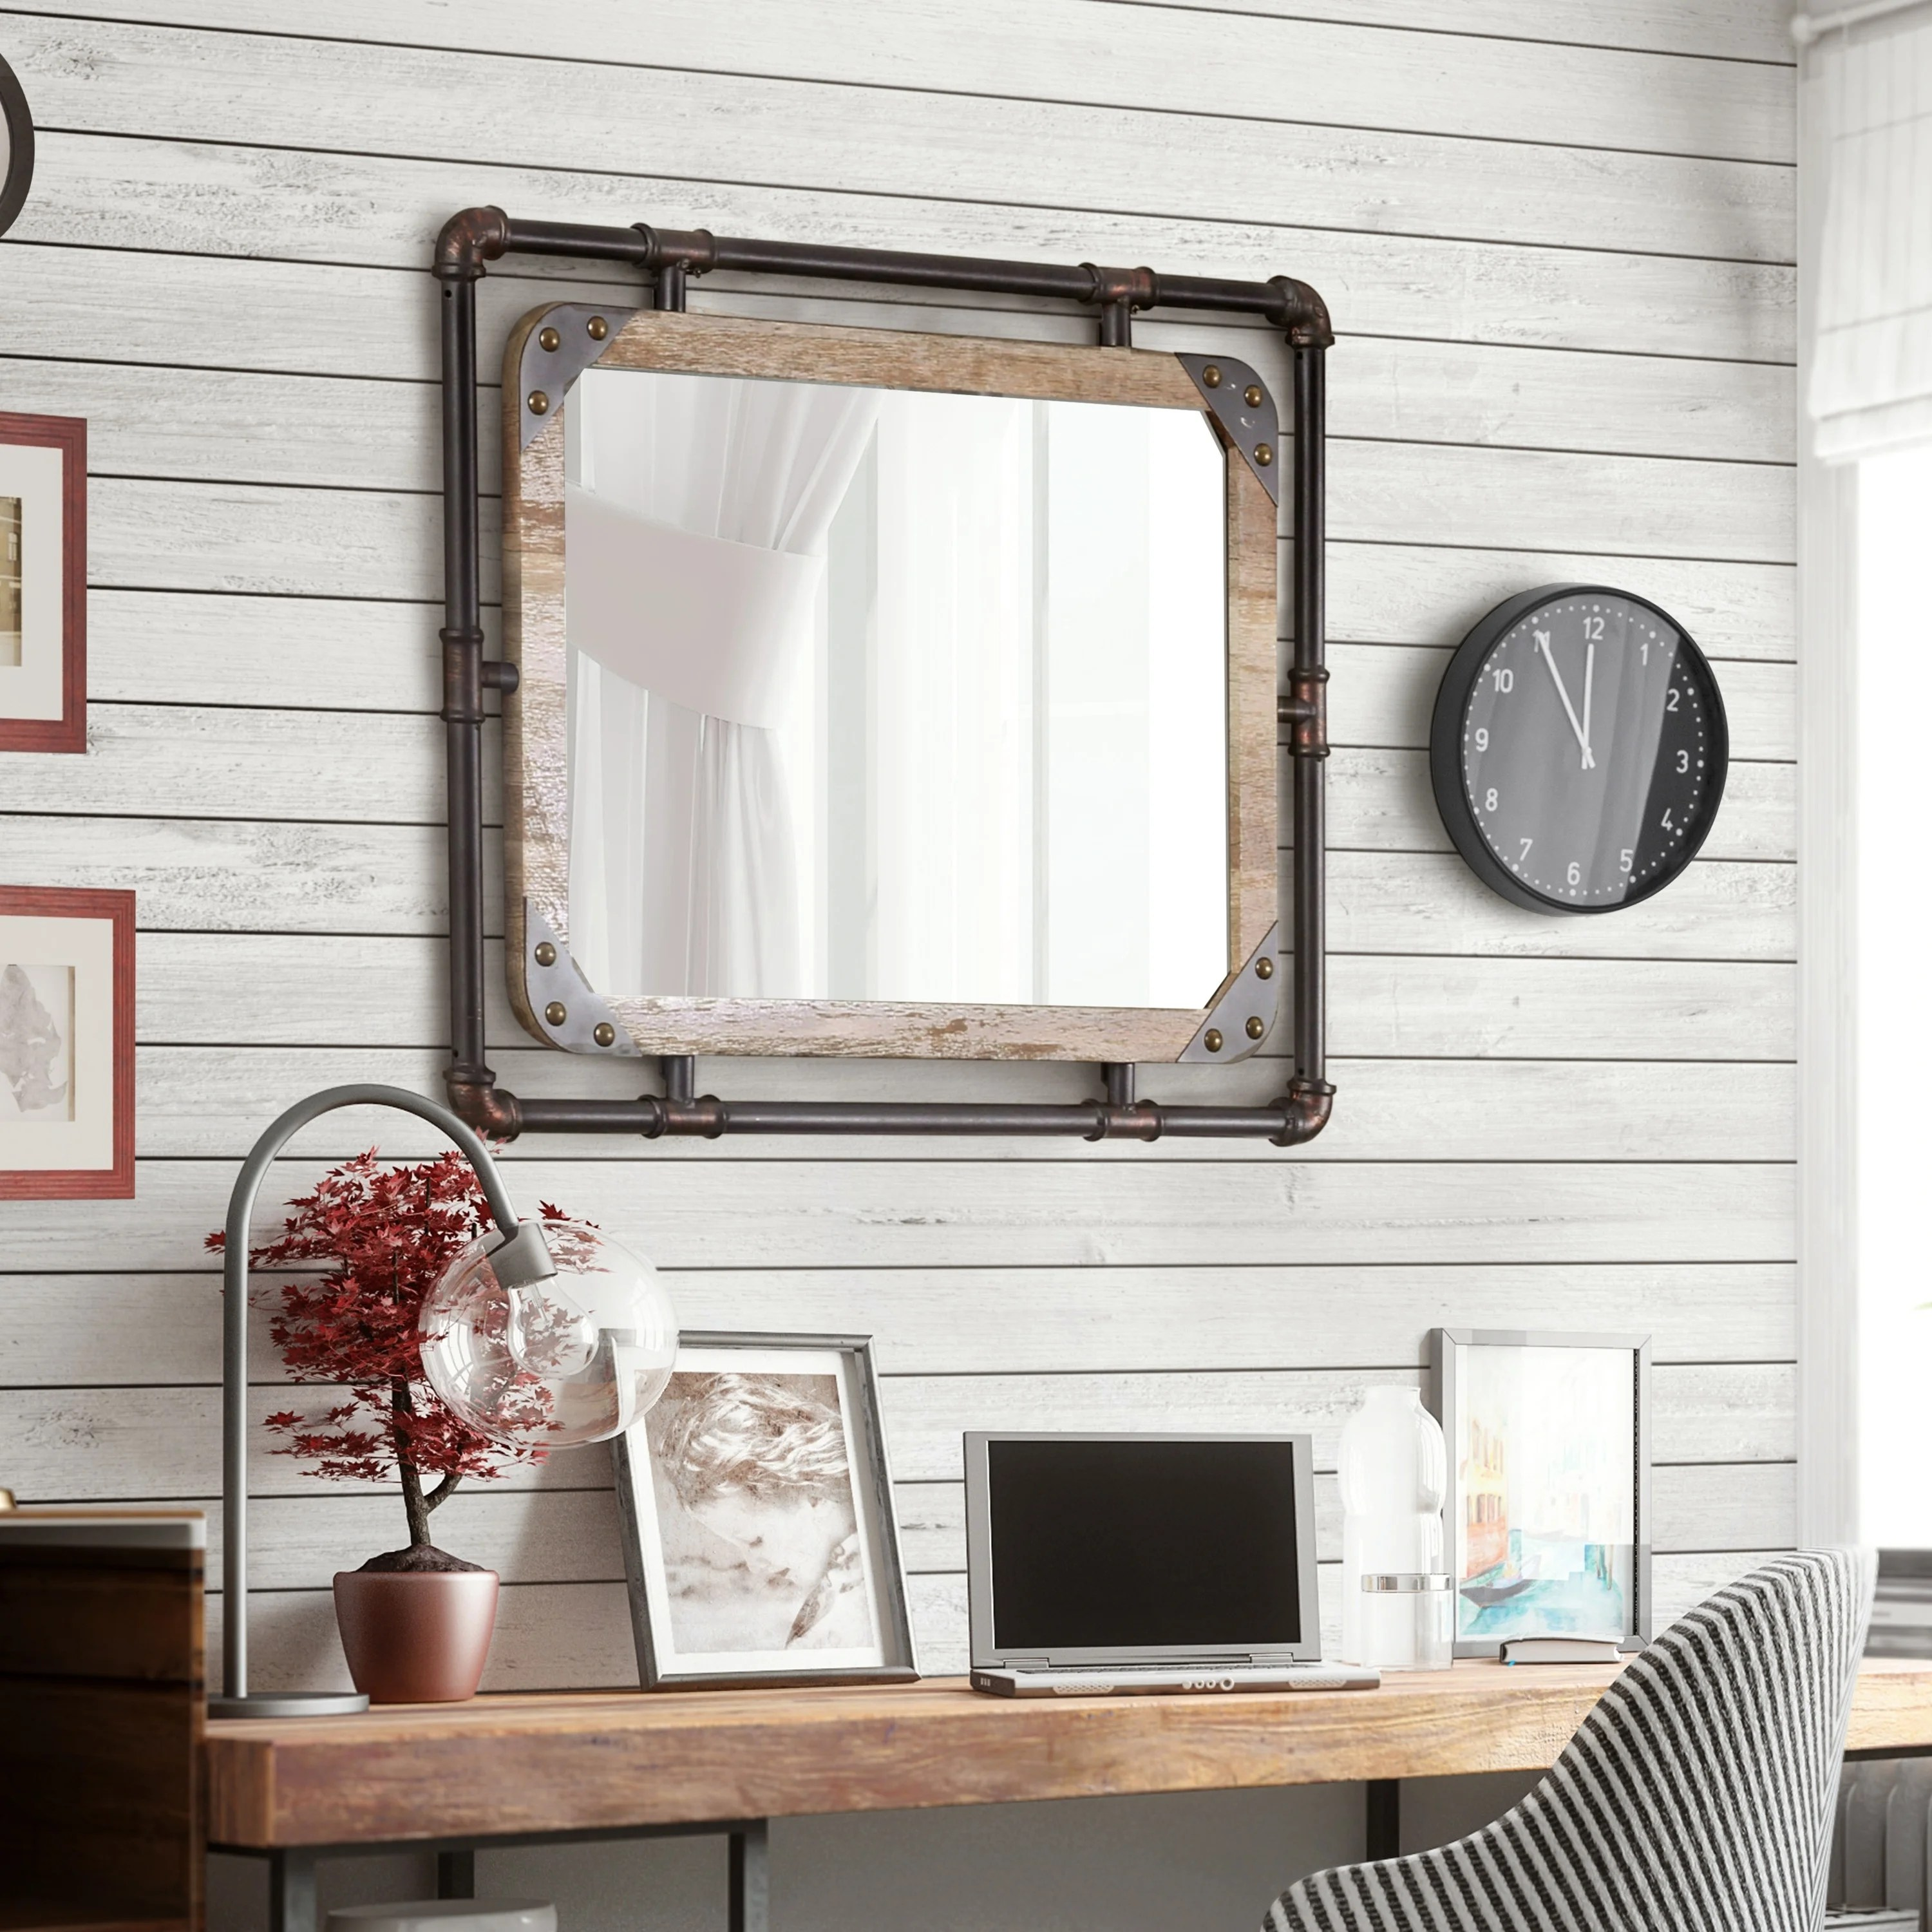 Huge Mirror Buy Mirrors Online At Overstock Our Best Decorative Accessories